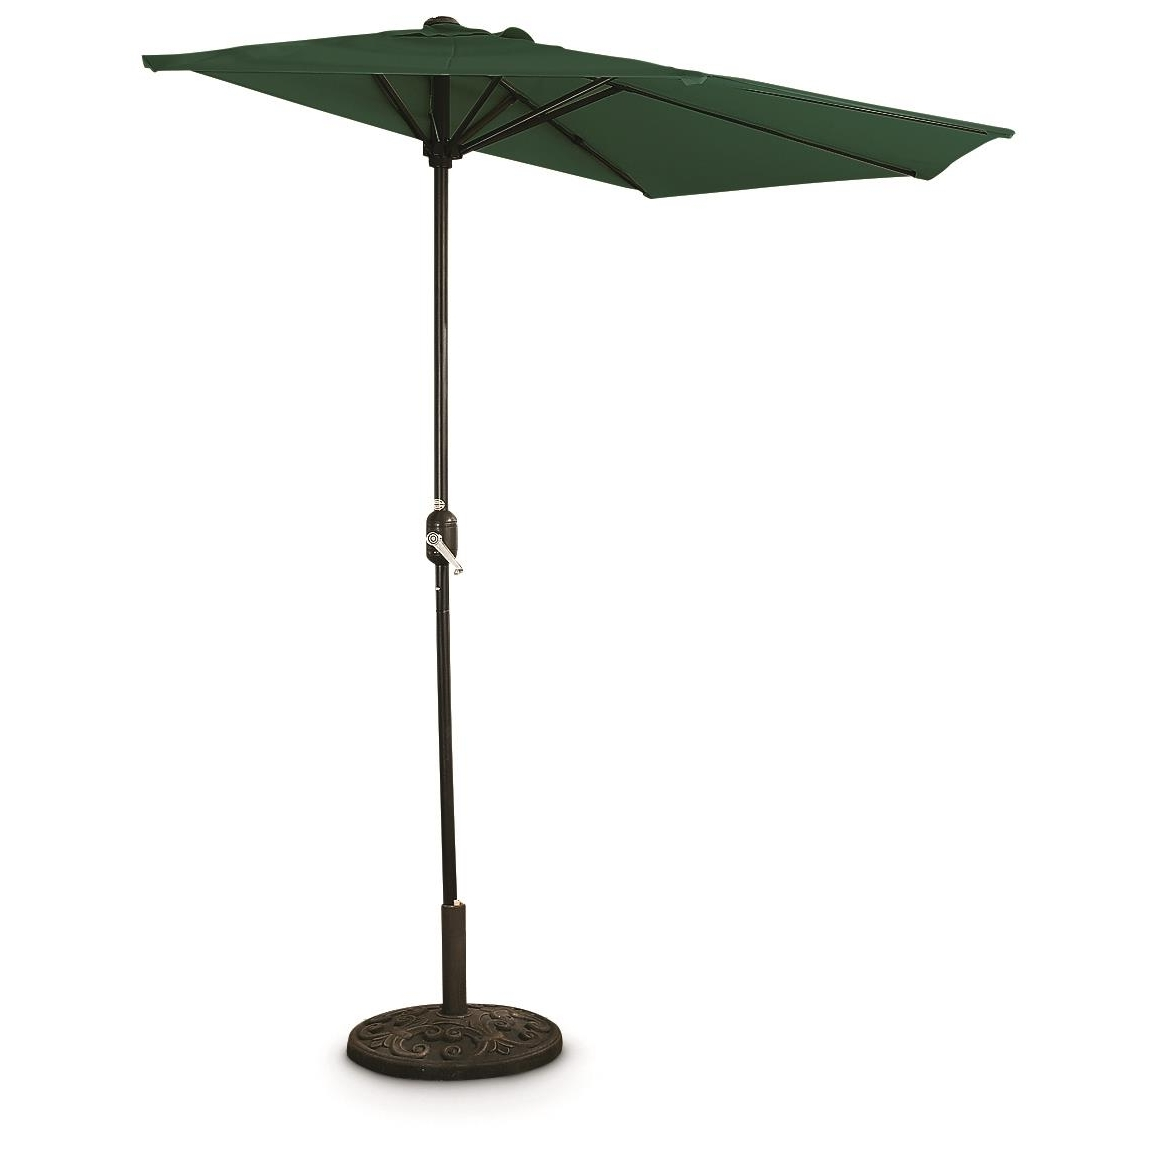 Newest Green Patio Umbrellas Within Castlecreek 8' Half Round Patio Umbrella – 235556, Patio Umbrellas (Gallery 11 of 20)